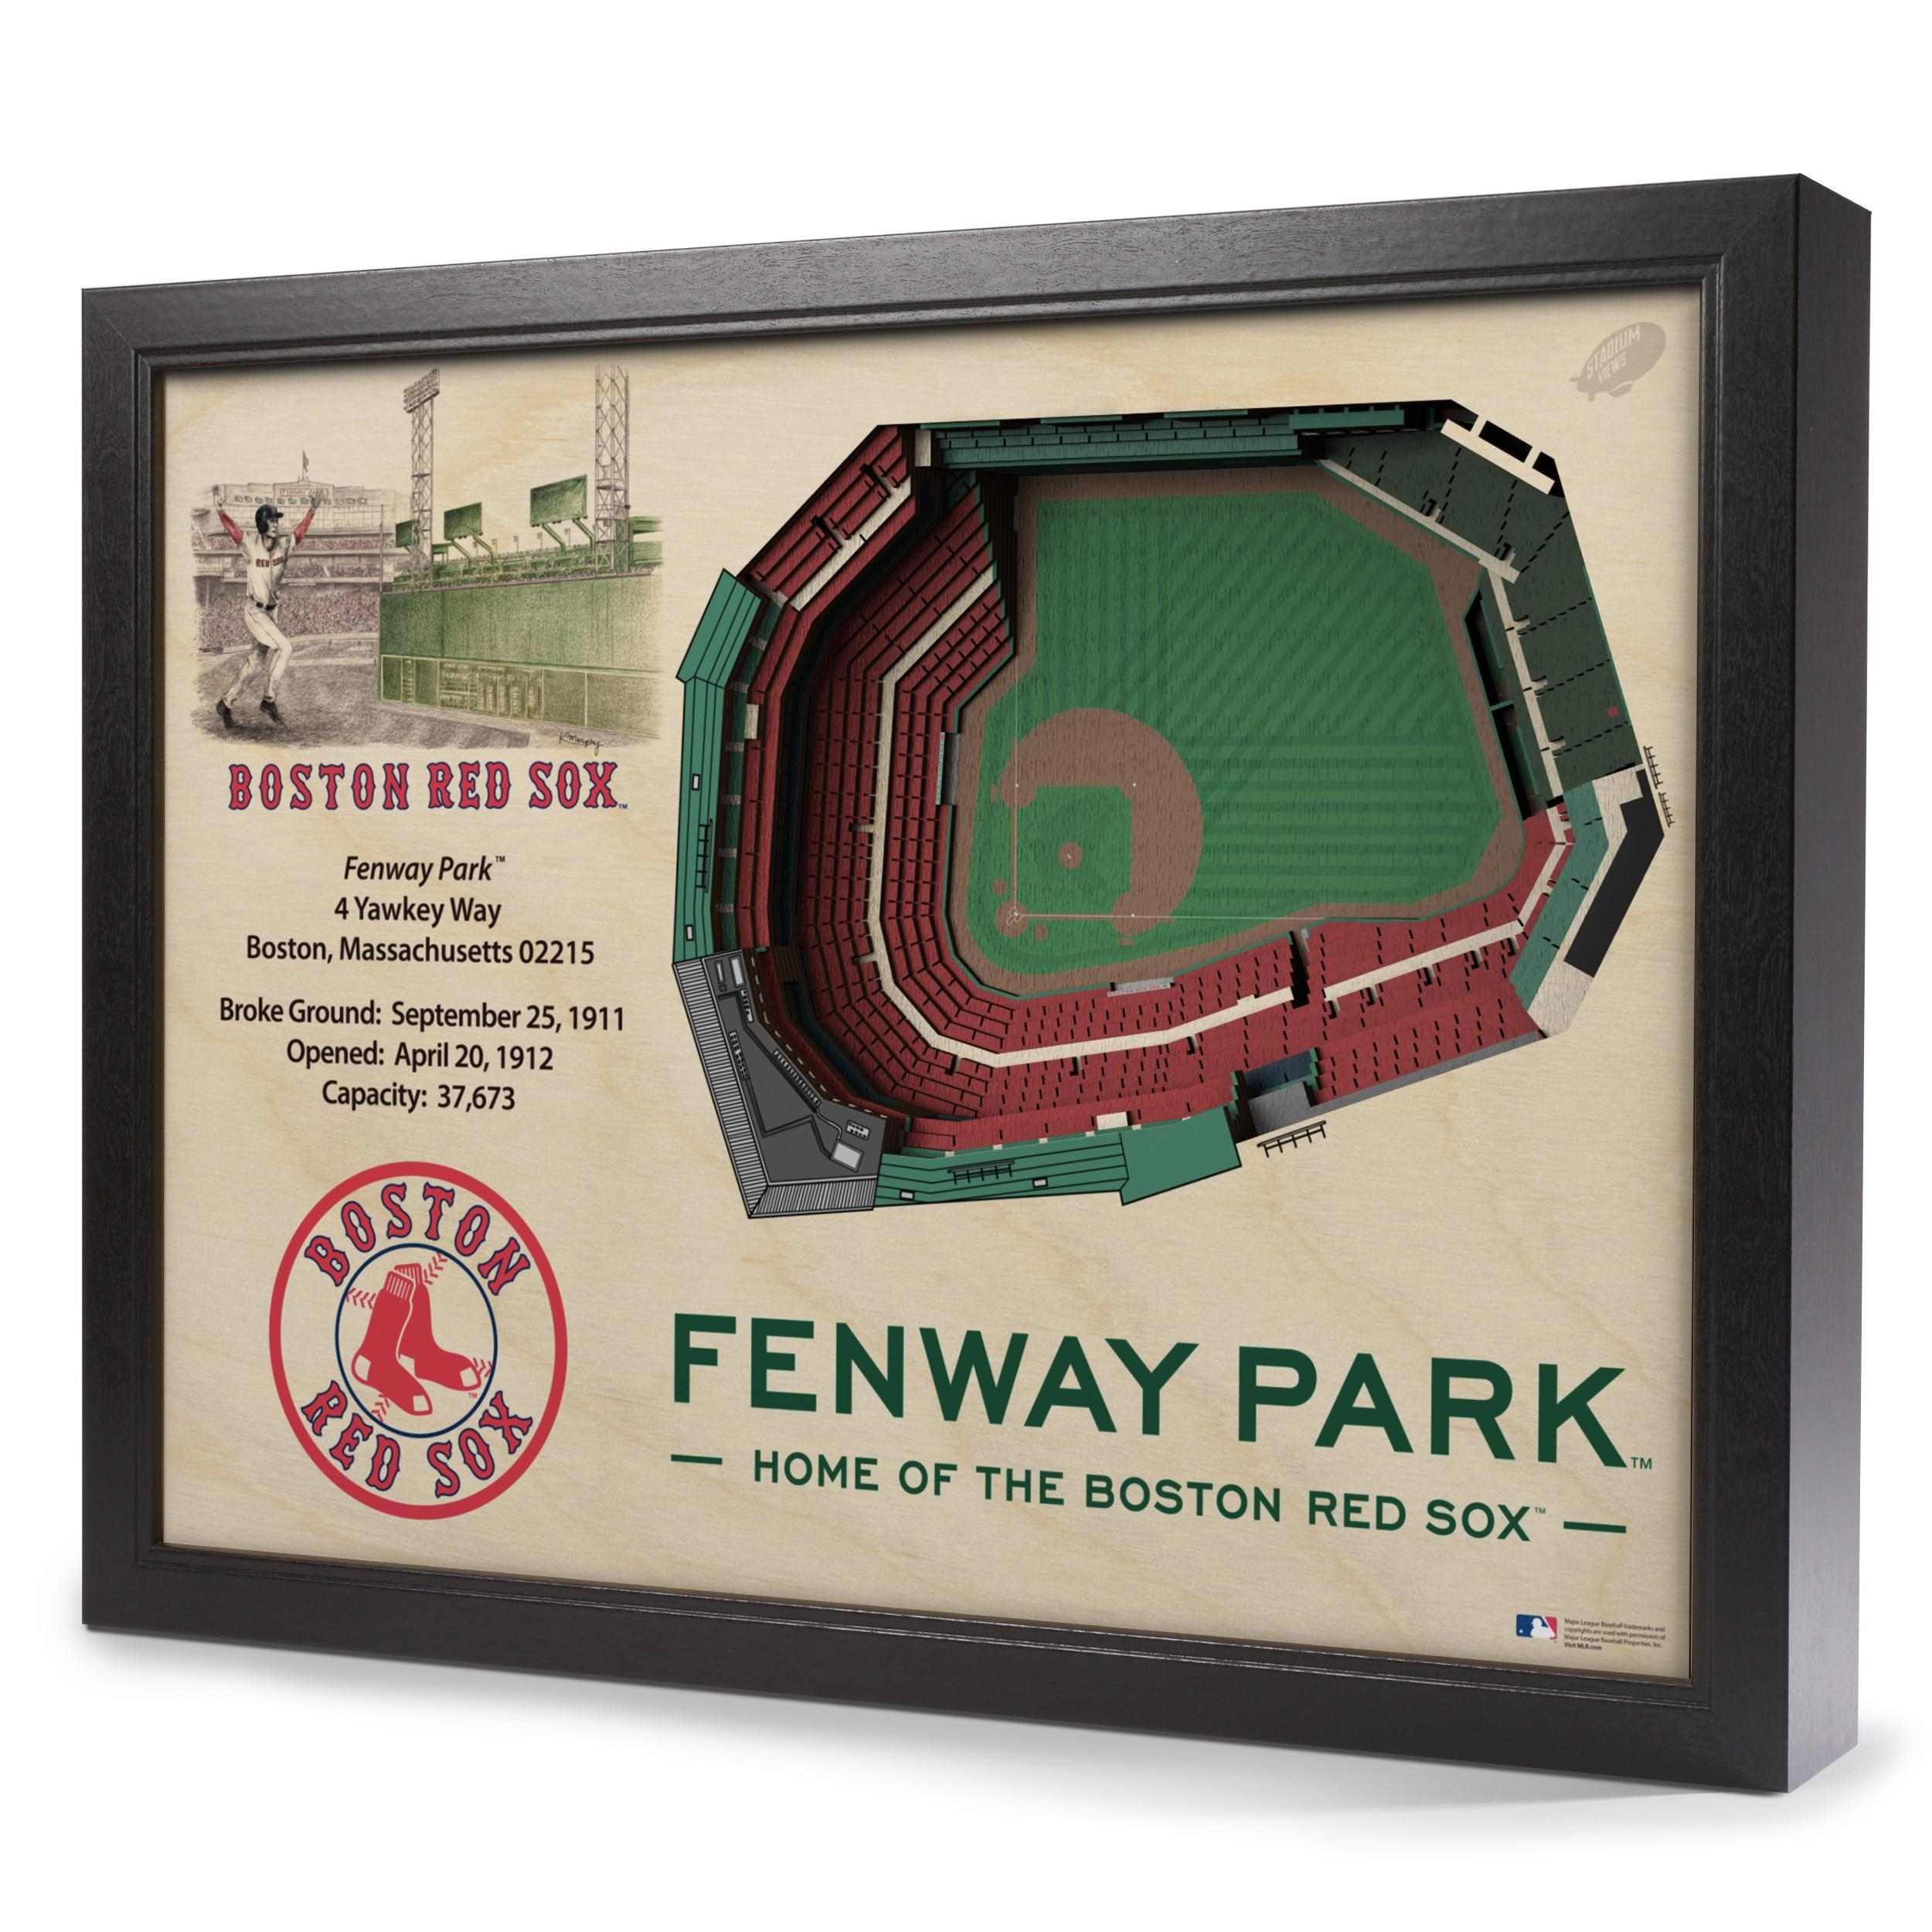 Boston Red Sox Stadiumview Wall Art – Fenway Park 3 D Reproduction Regarding Boston Red Sox Wall Art (Image 9 of 20)